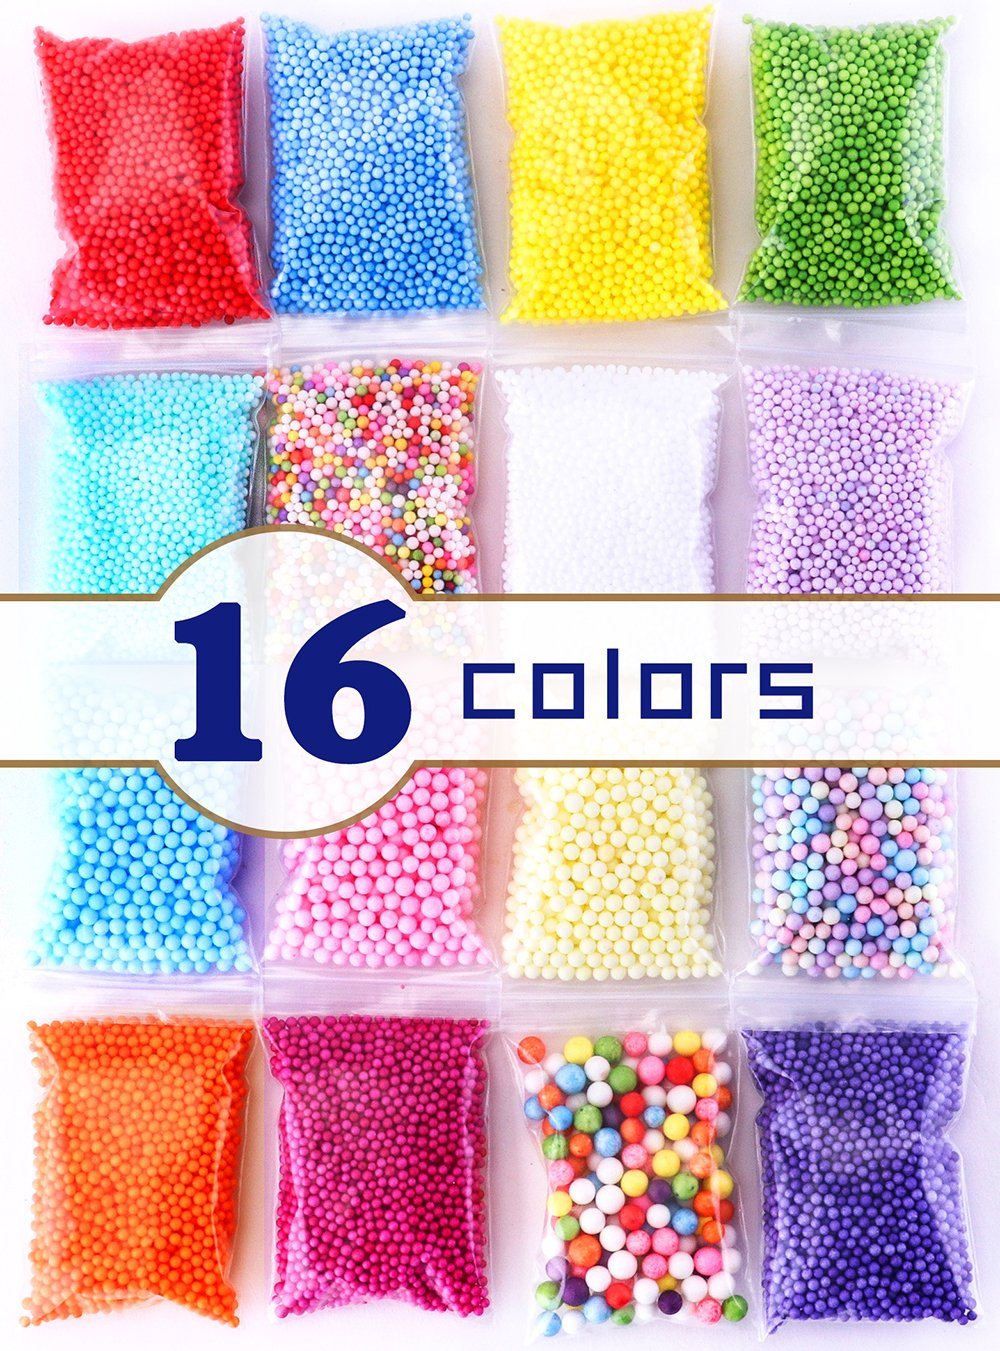 Tawadi Foam Beads for Slime - 3 Size Craft Foam Balls for DIY Crafts Supplies -16 Pack Slime Beads for Homemade Slime Making - Floam Beads for Soft Clay and Home Decoration (16 Pack) 4336848754